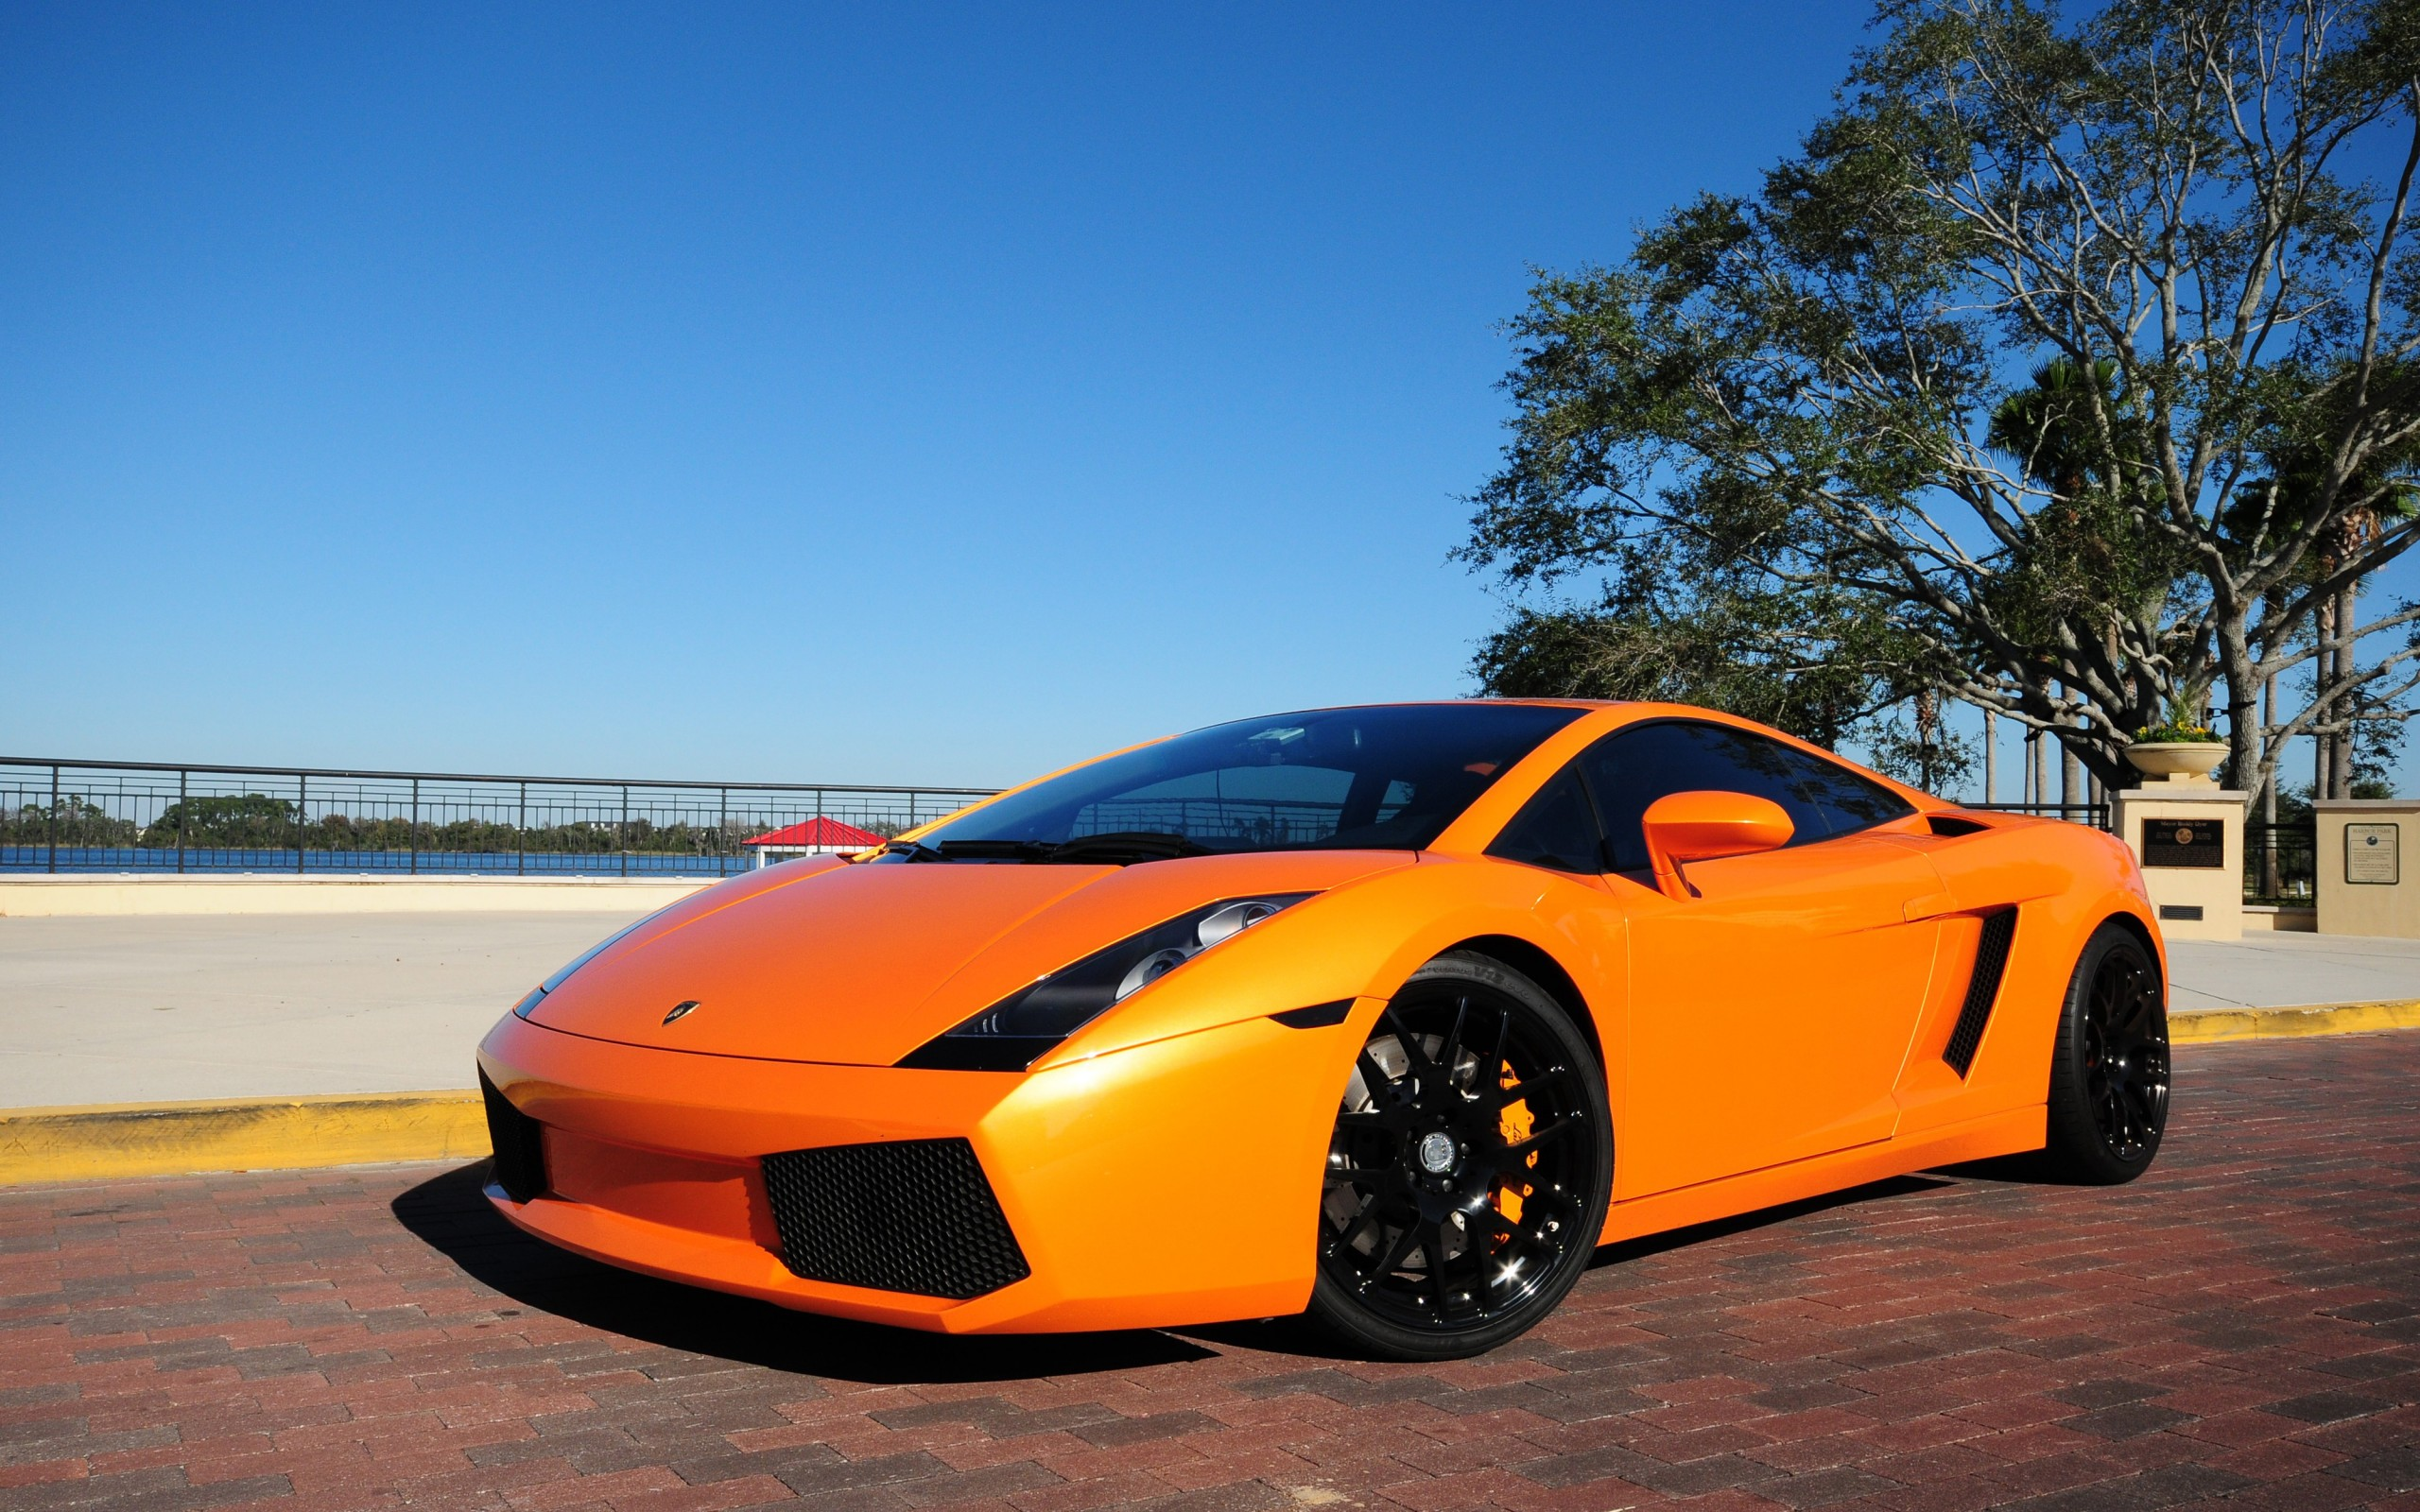 Lamborghini Gallardo Orange Wallpaper